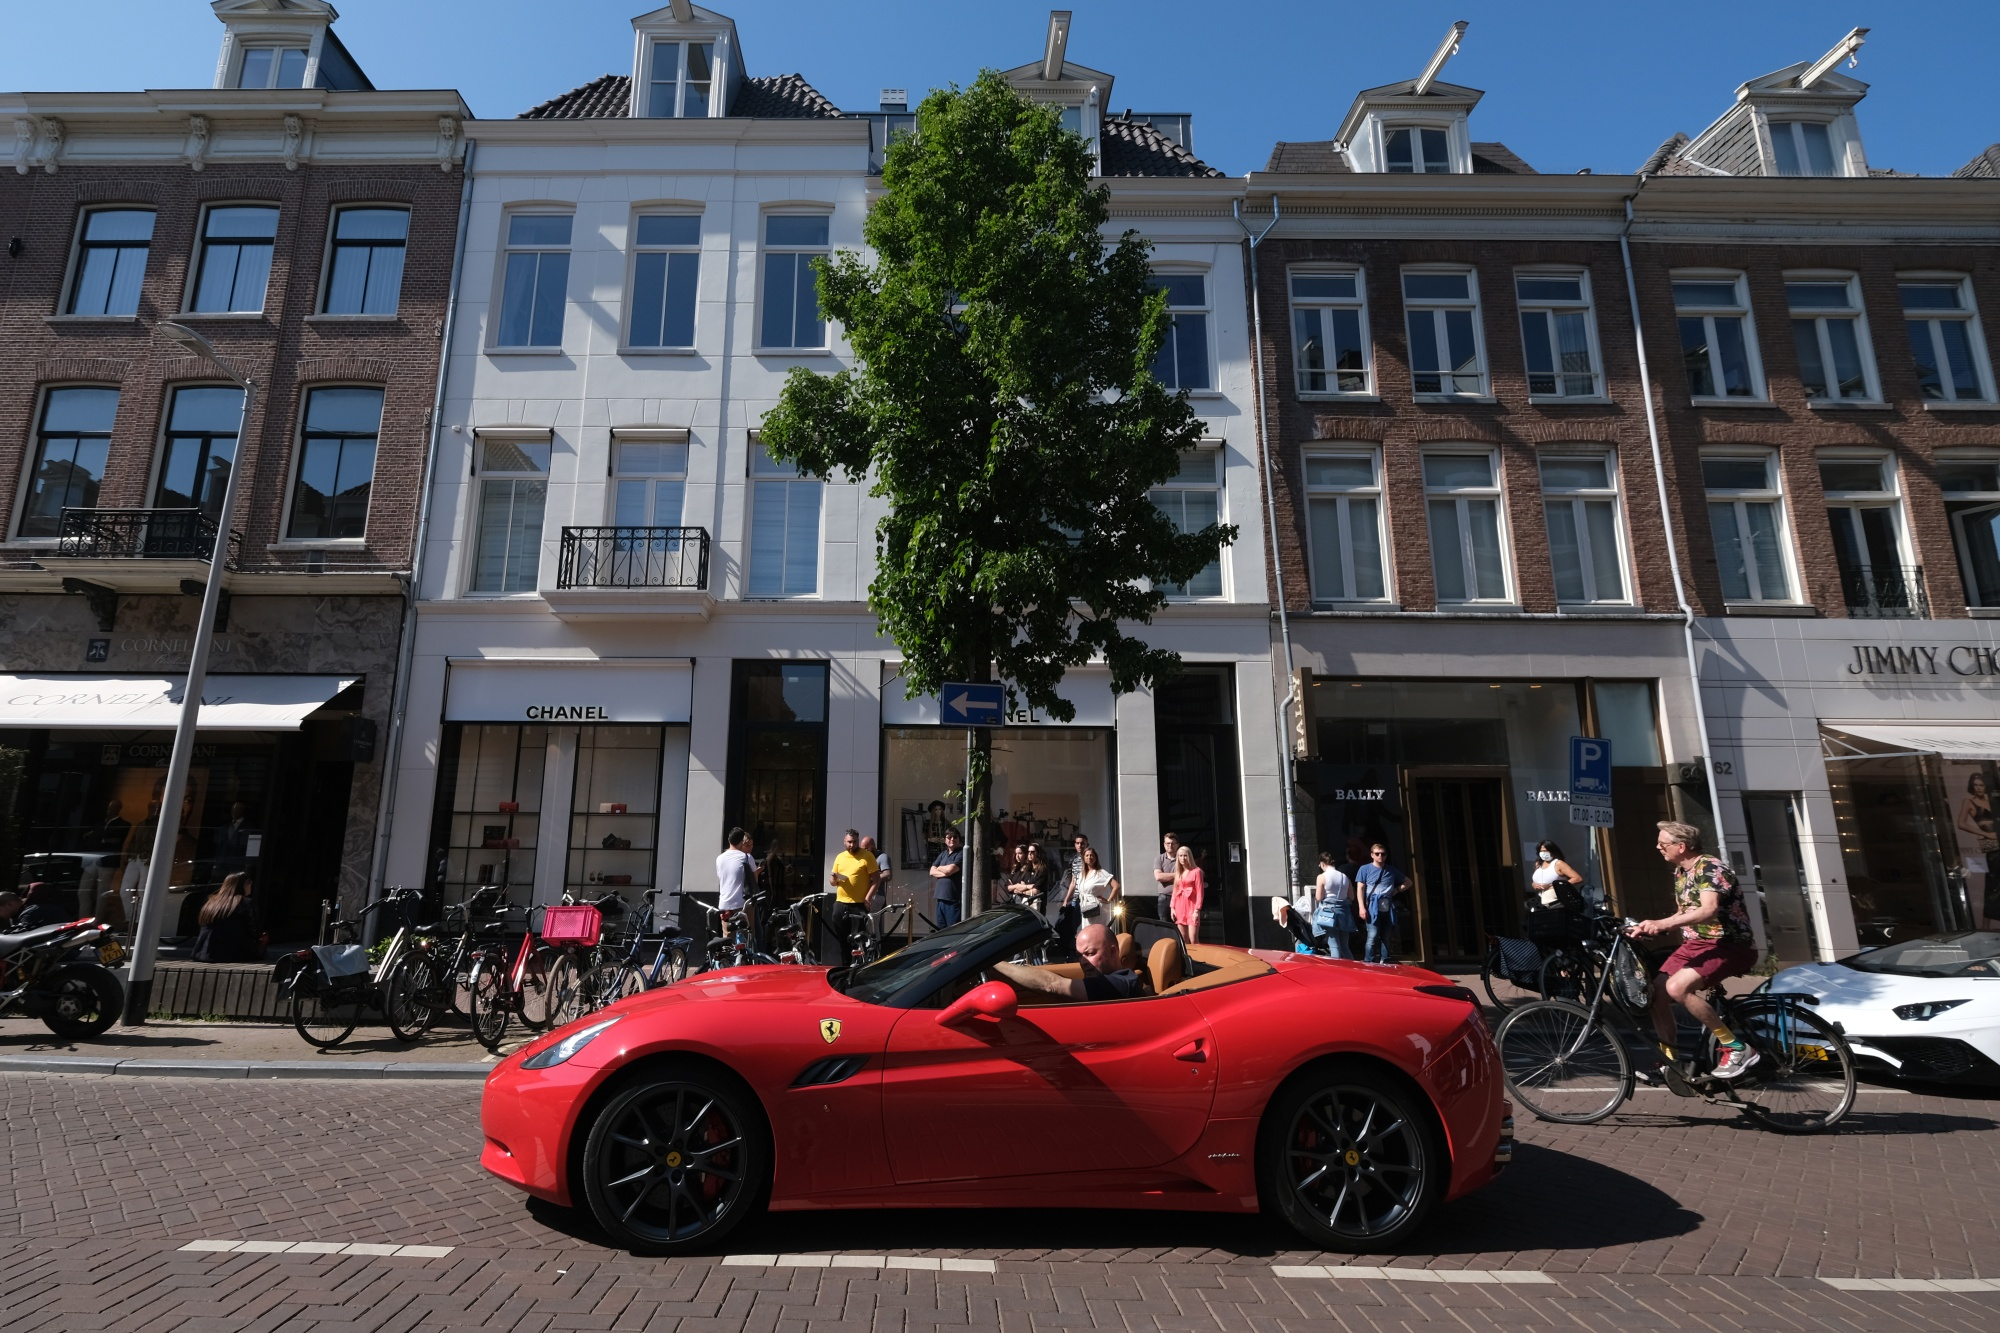 New Ferrari Demand Stays Strong in Covid-19 Pandemic - Bloomberg